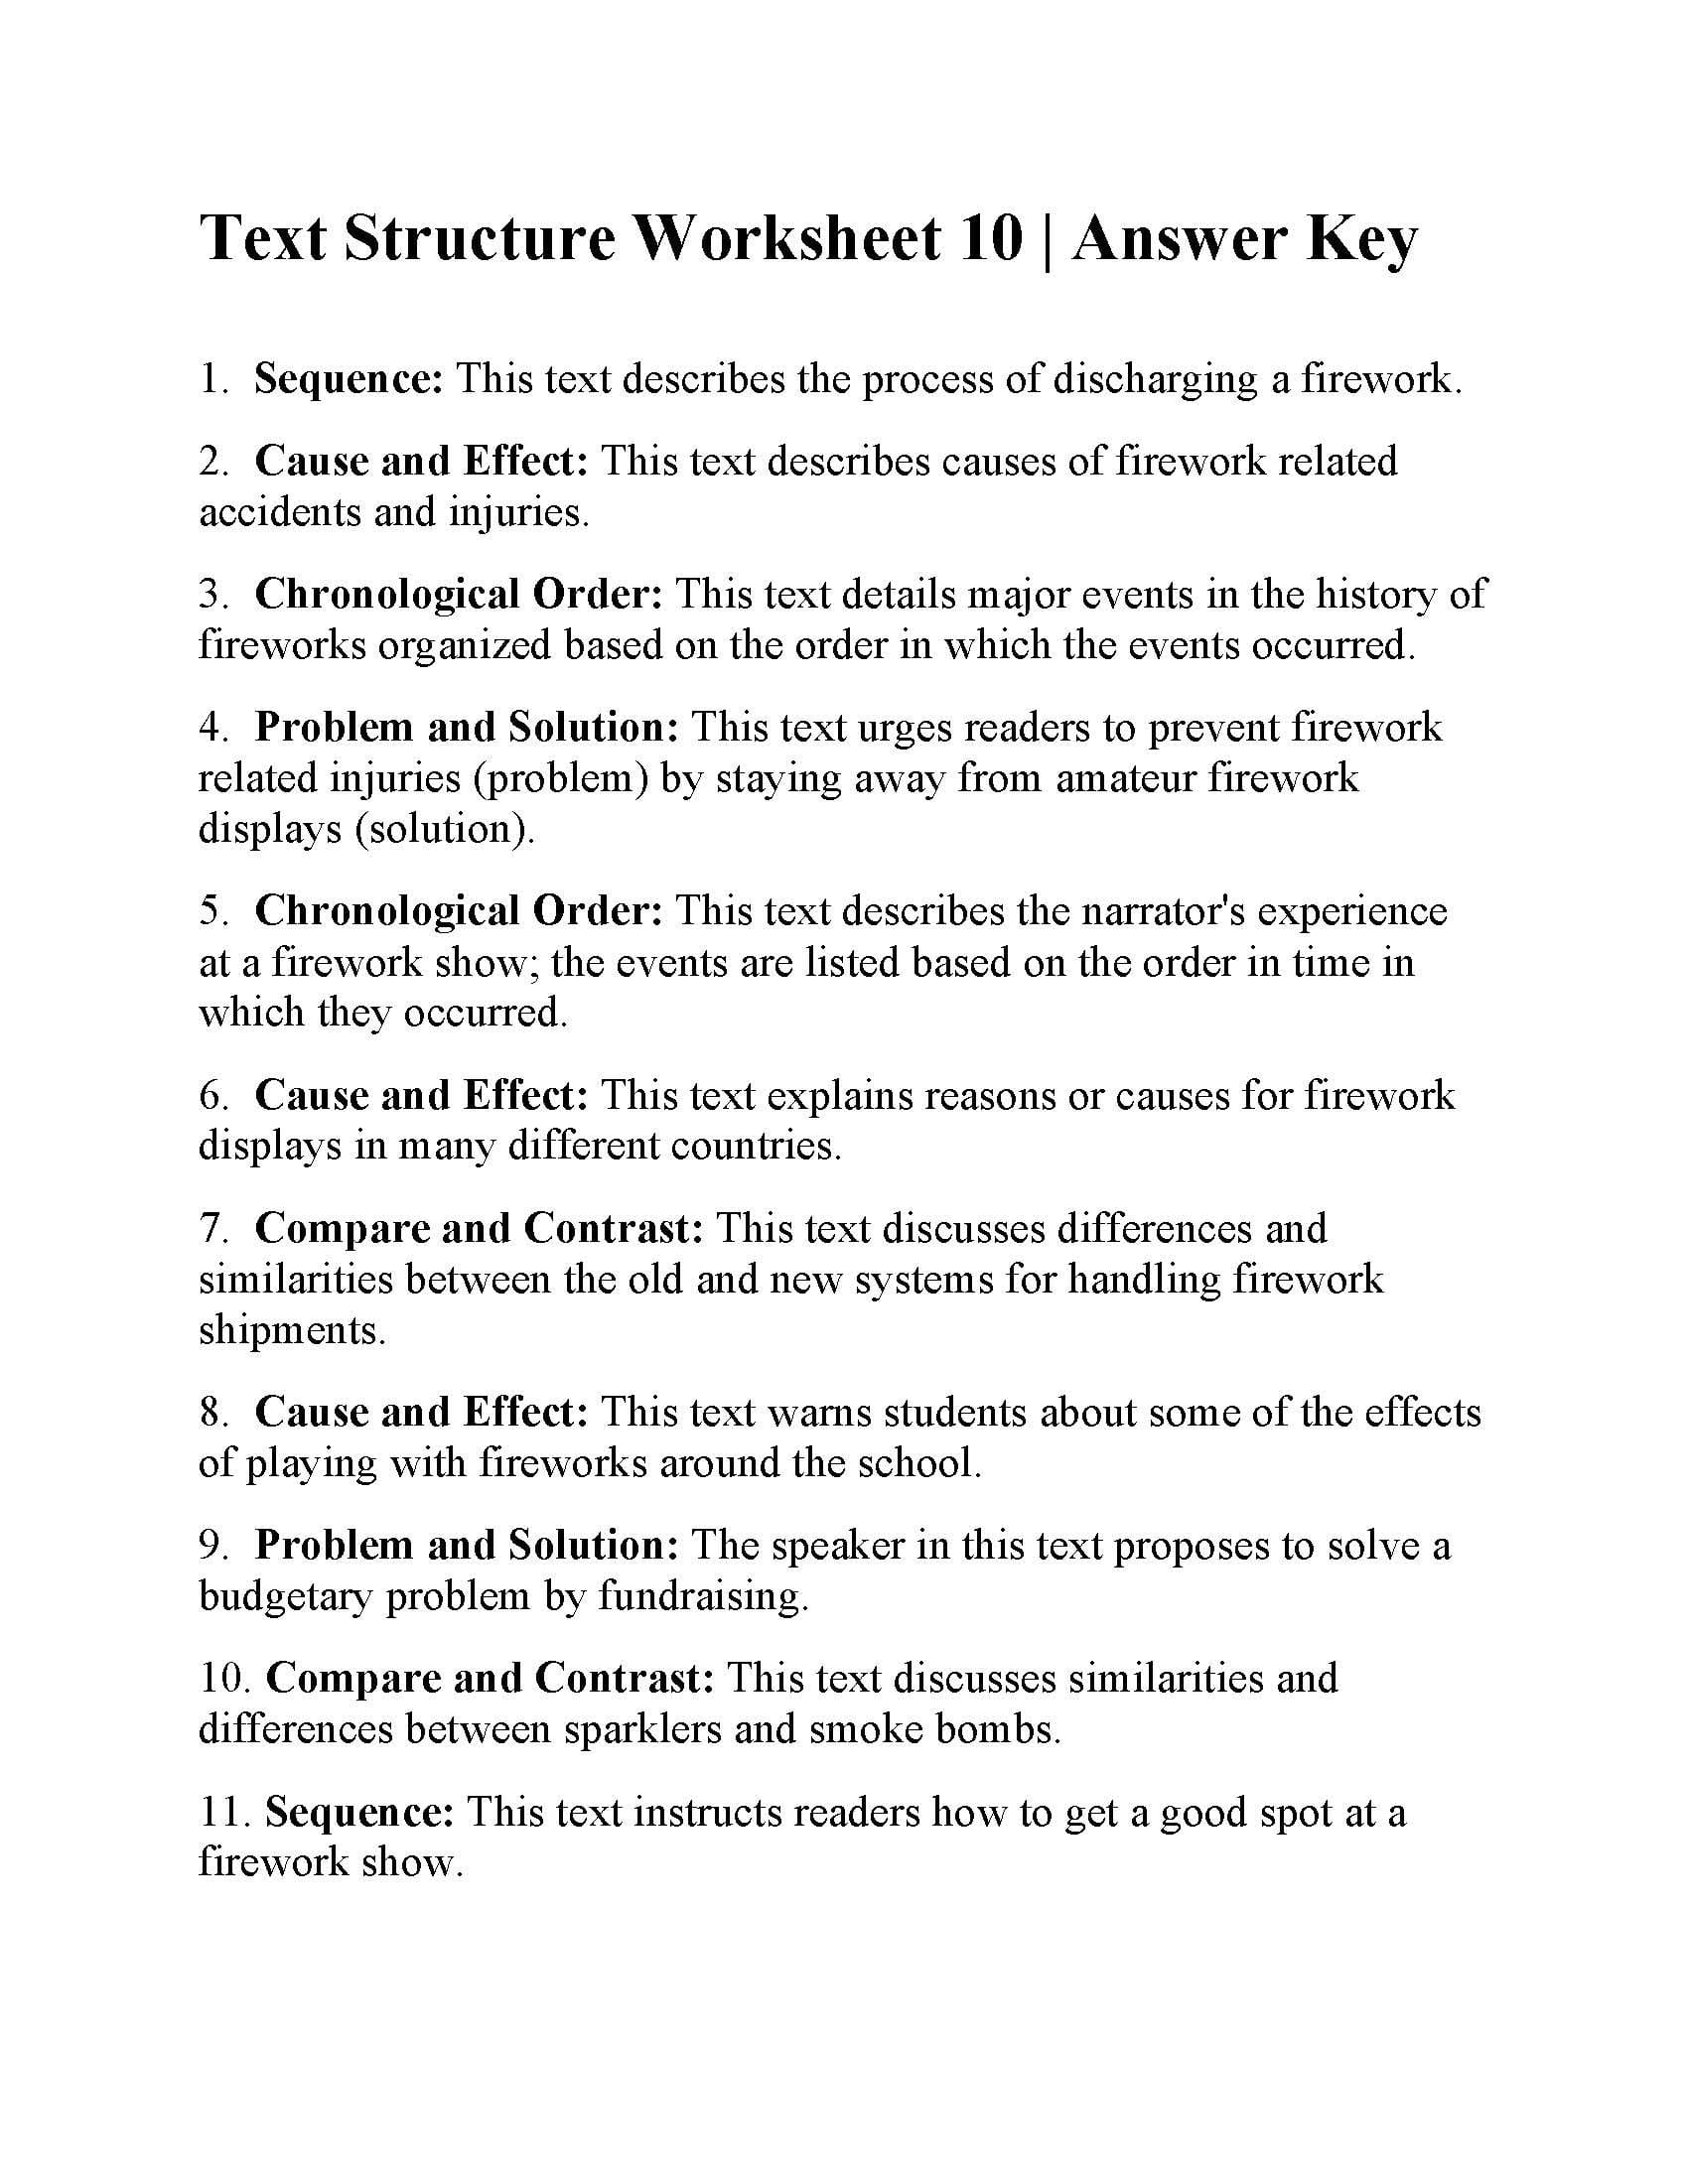 Text Structure Worksheet 10  Answers Together With Nonfiction Text Structures Worksheet